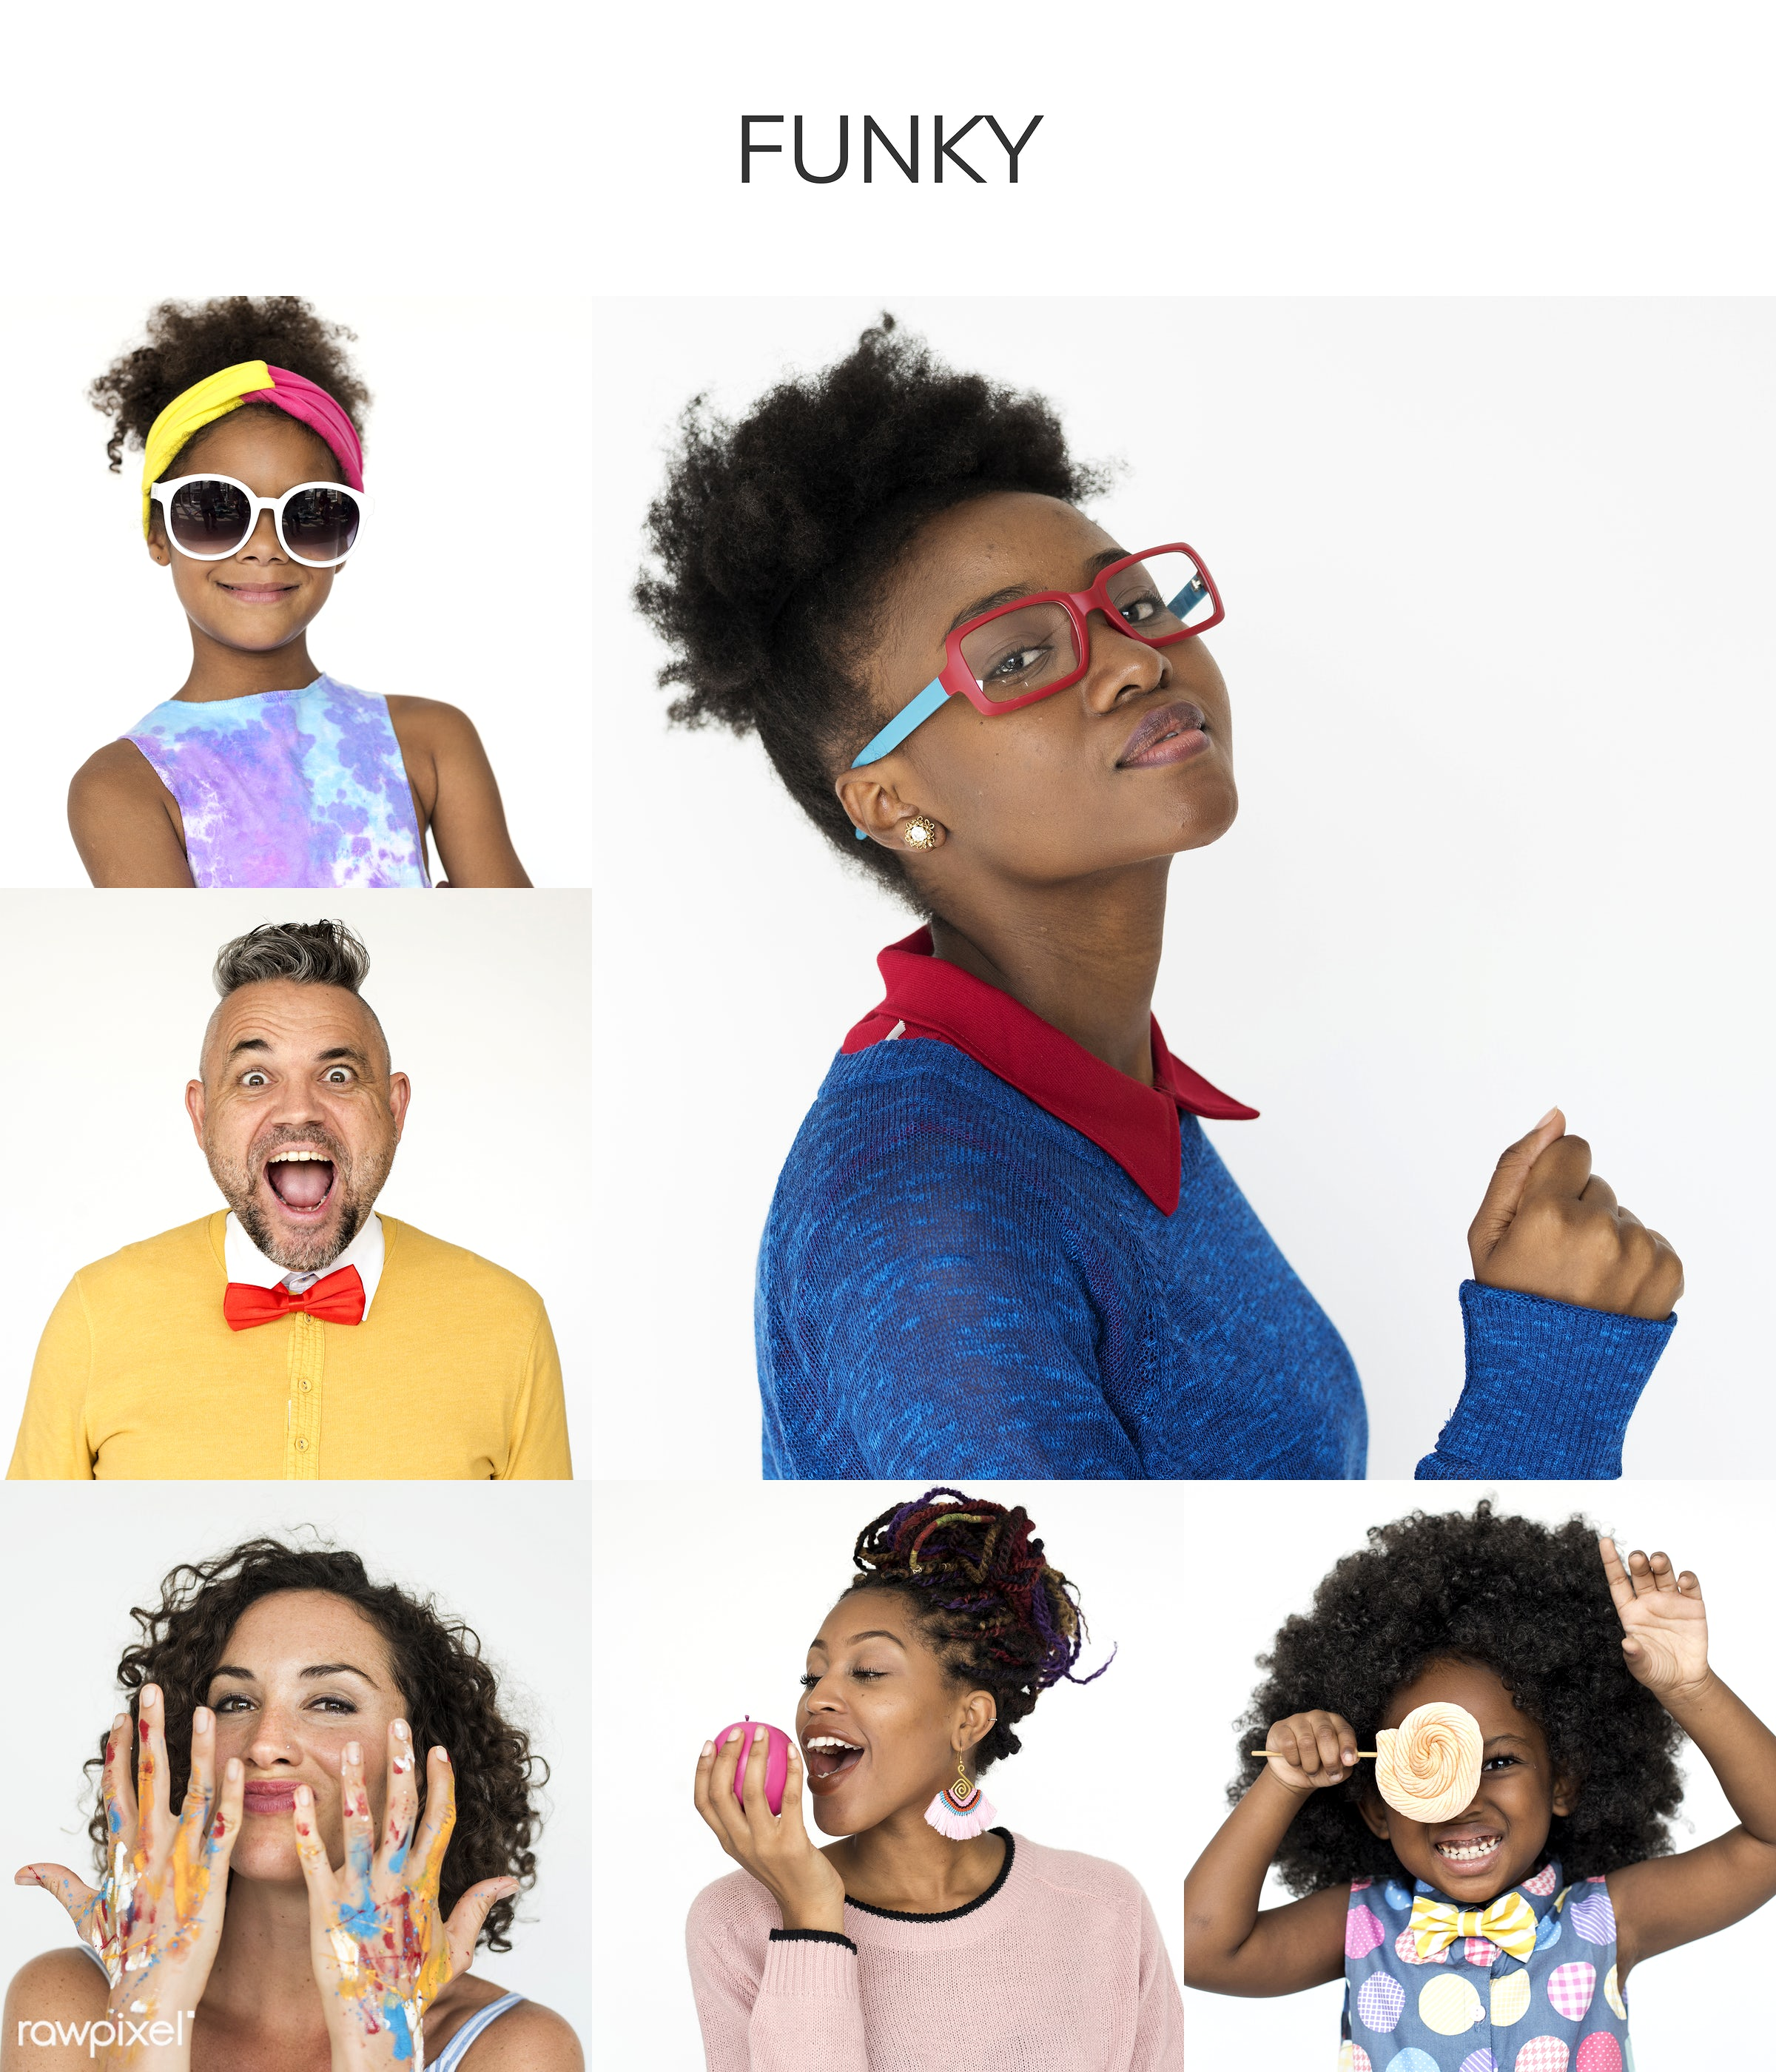 studio, playful, funky, diverse, set, children, collection, hilarious, people, kid, face expression, nerd, style, crazy,...